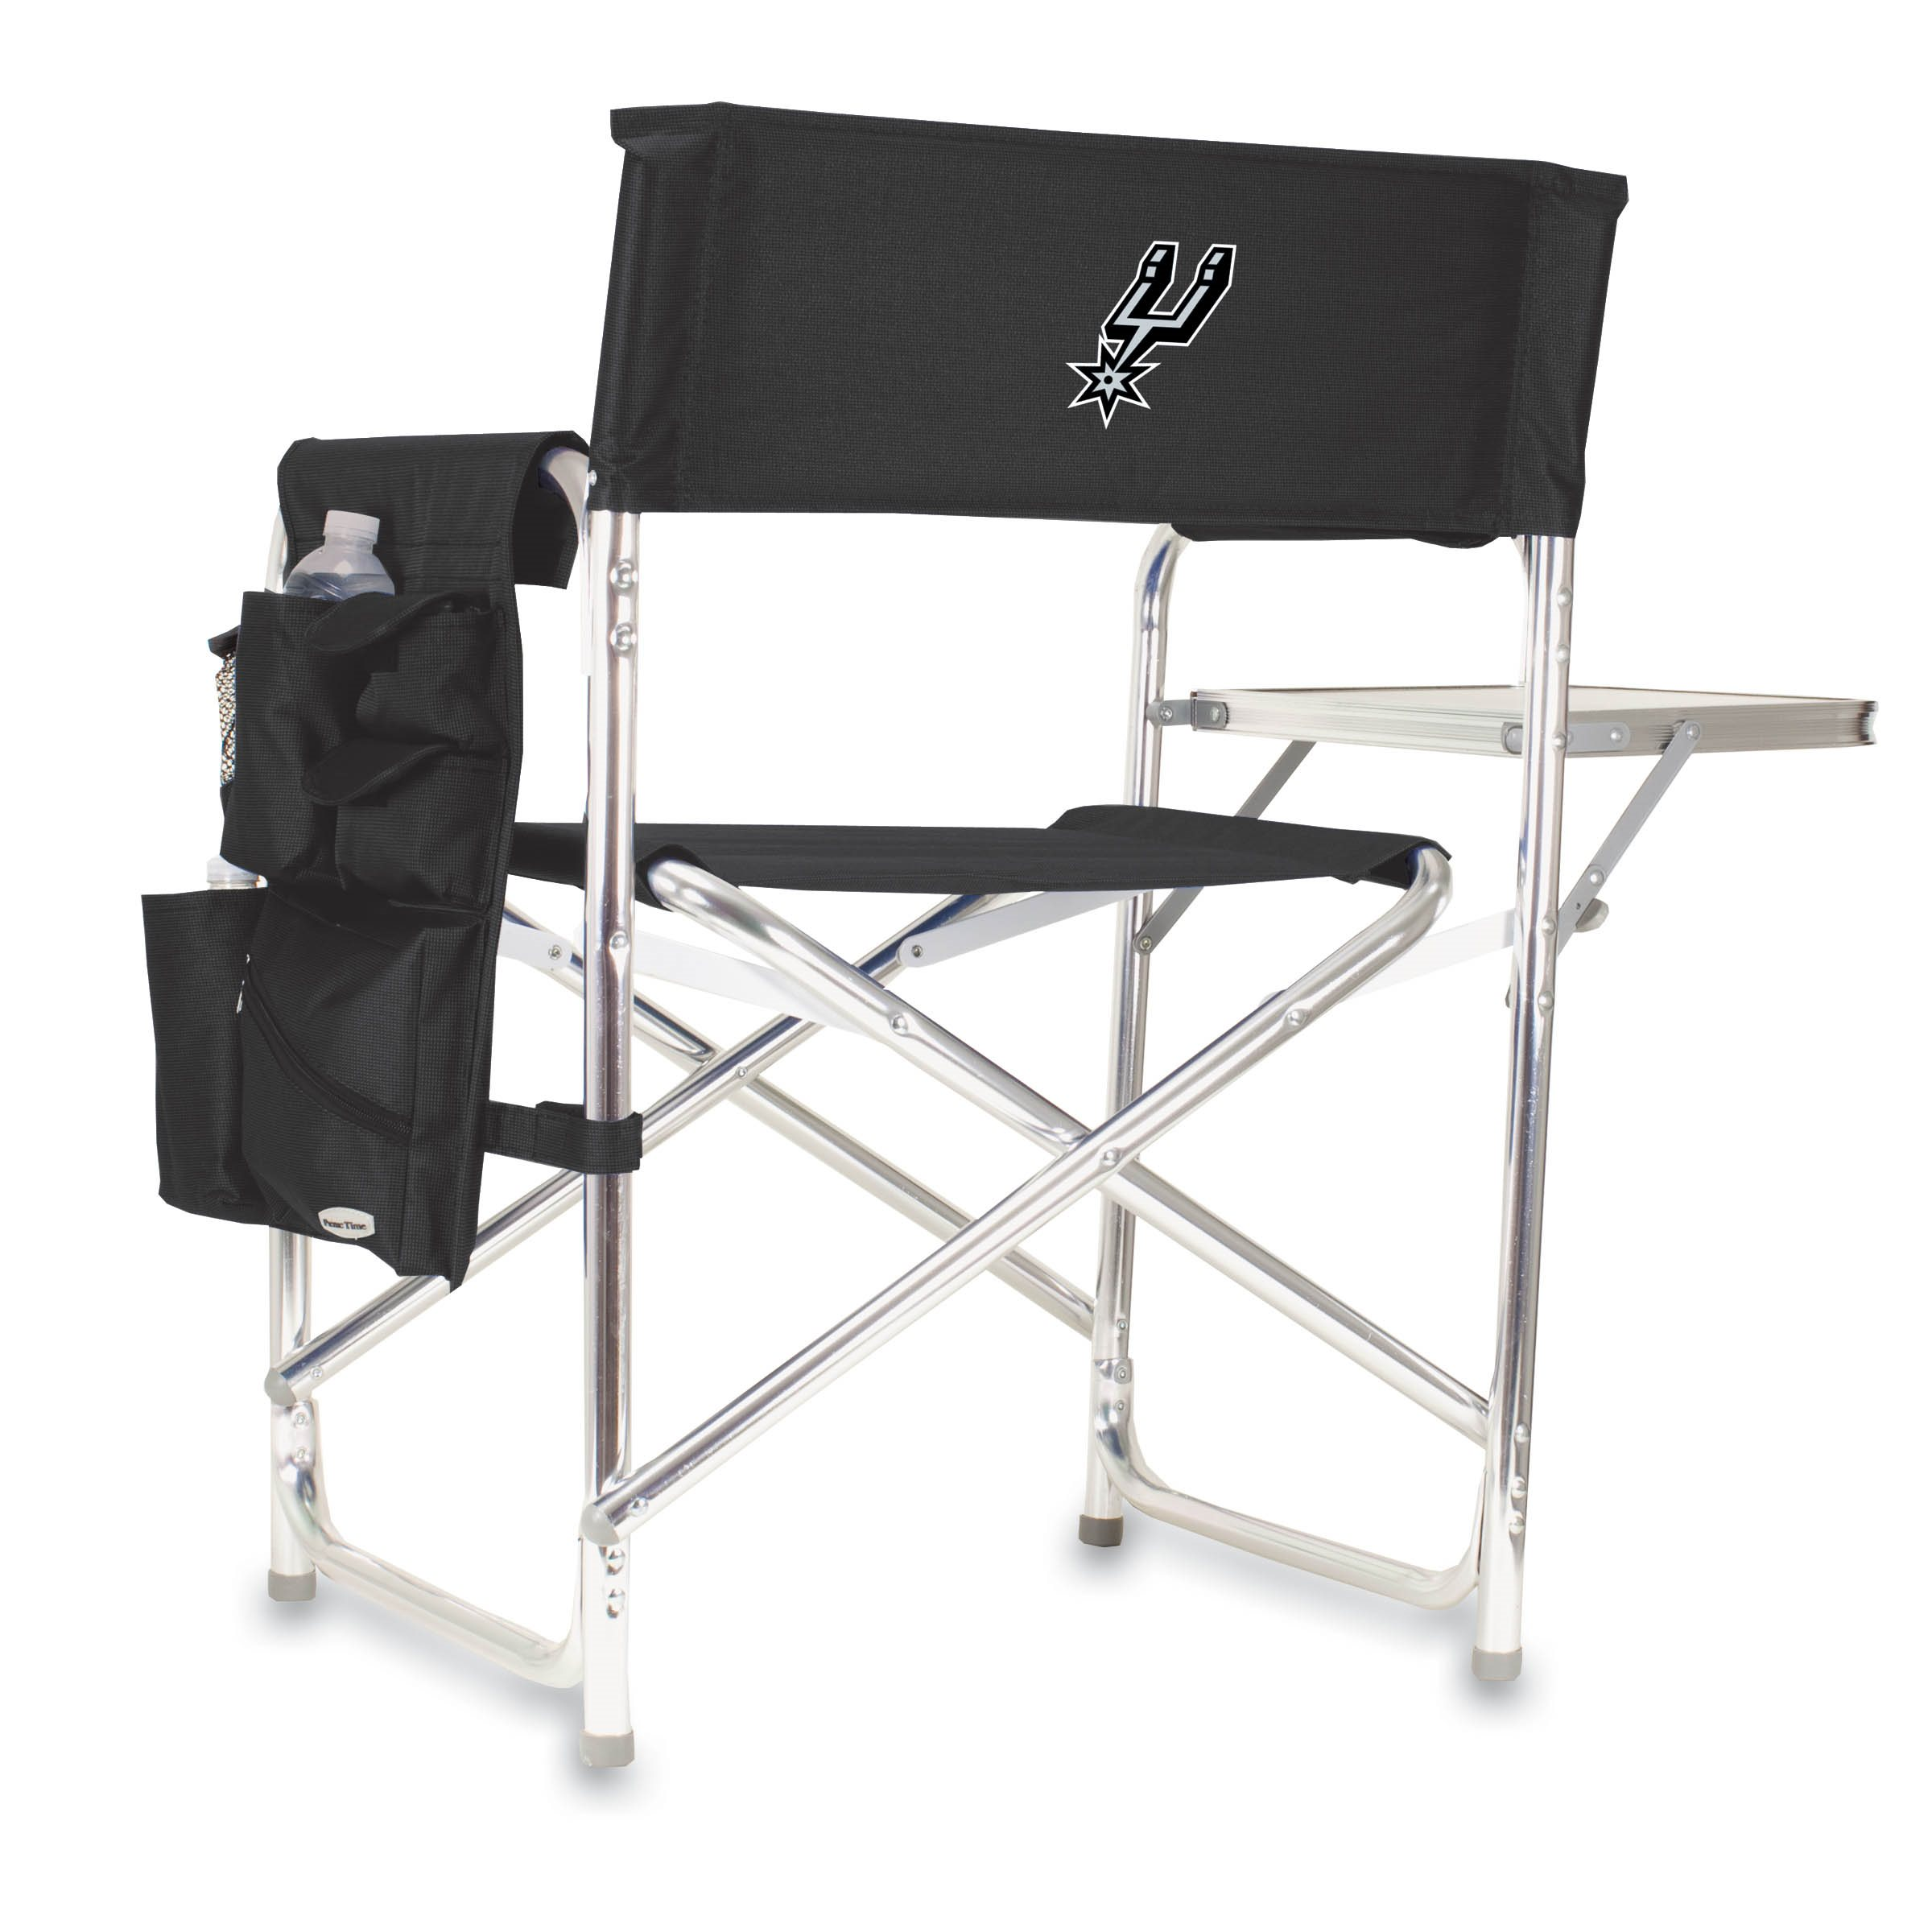 Picnic Time Nba Sports Chair San Antonio Spurs